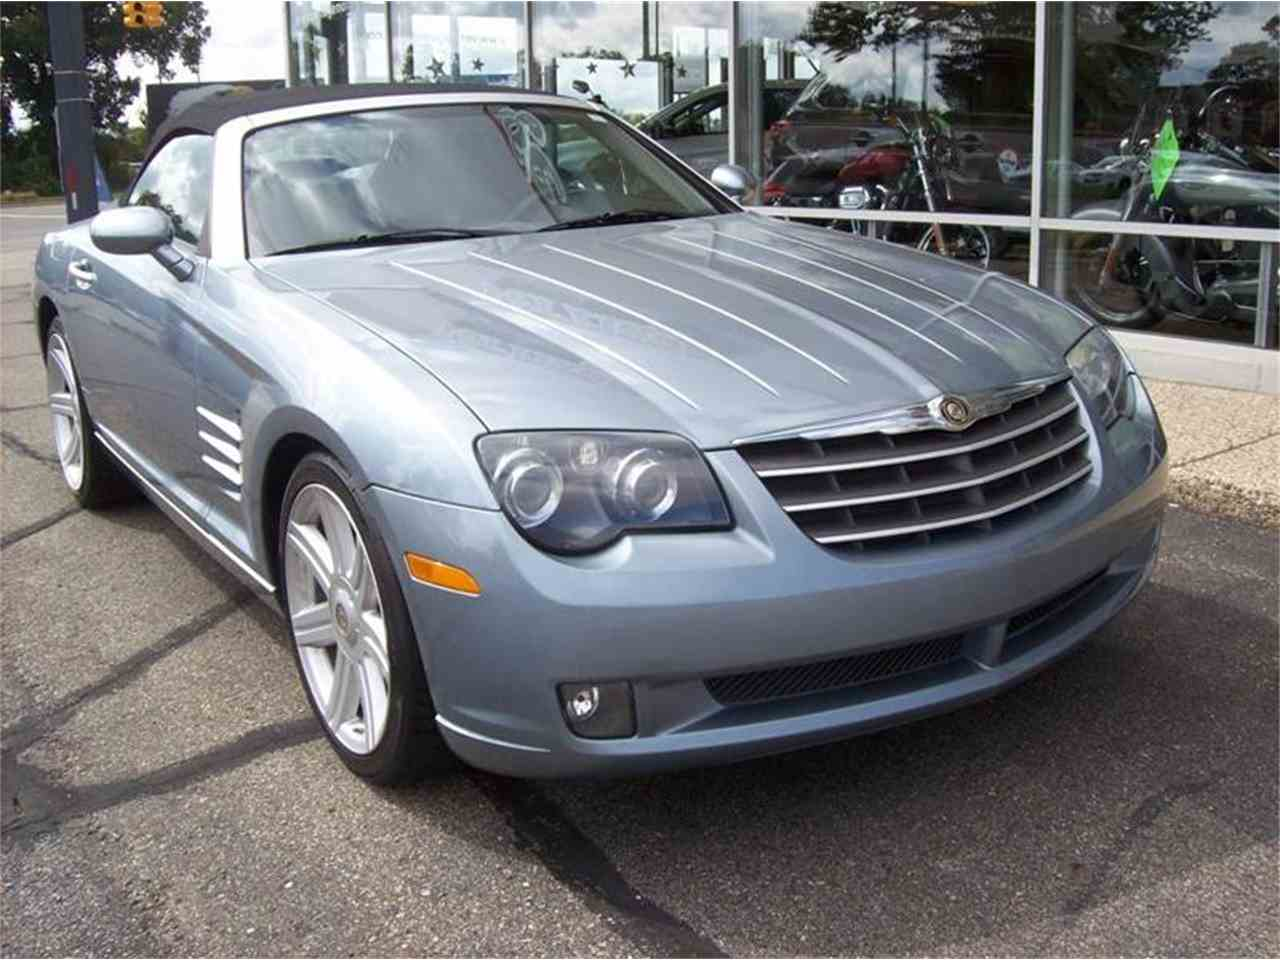 vertical on roadster the door doors right open lambo yes or chrysler bolt page no forum kits crossfireforum rear inc crossfire direct